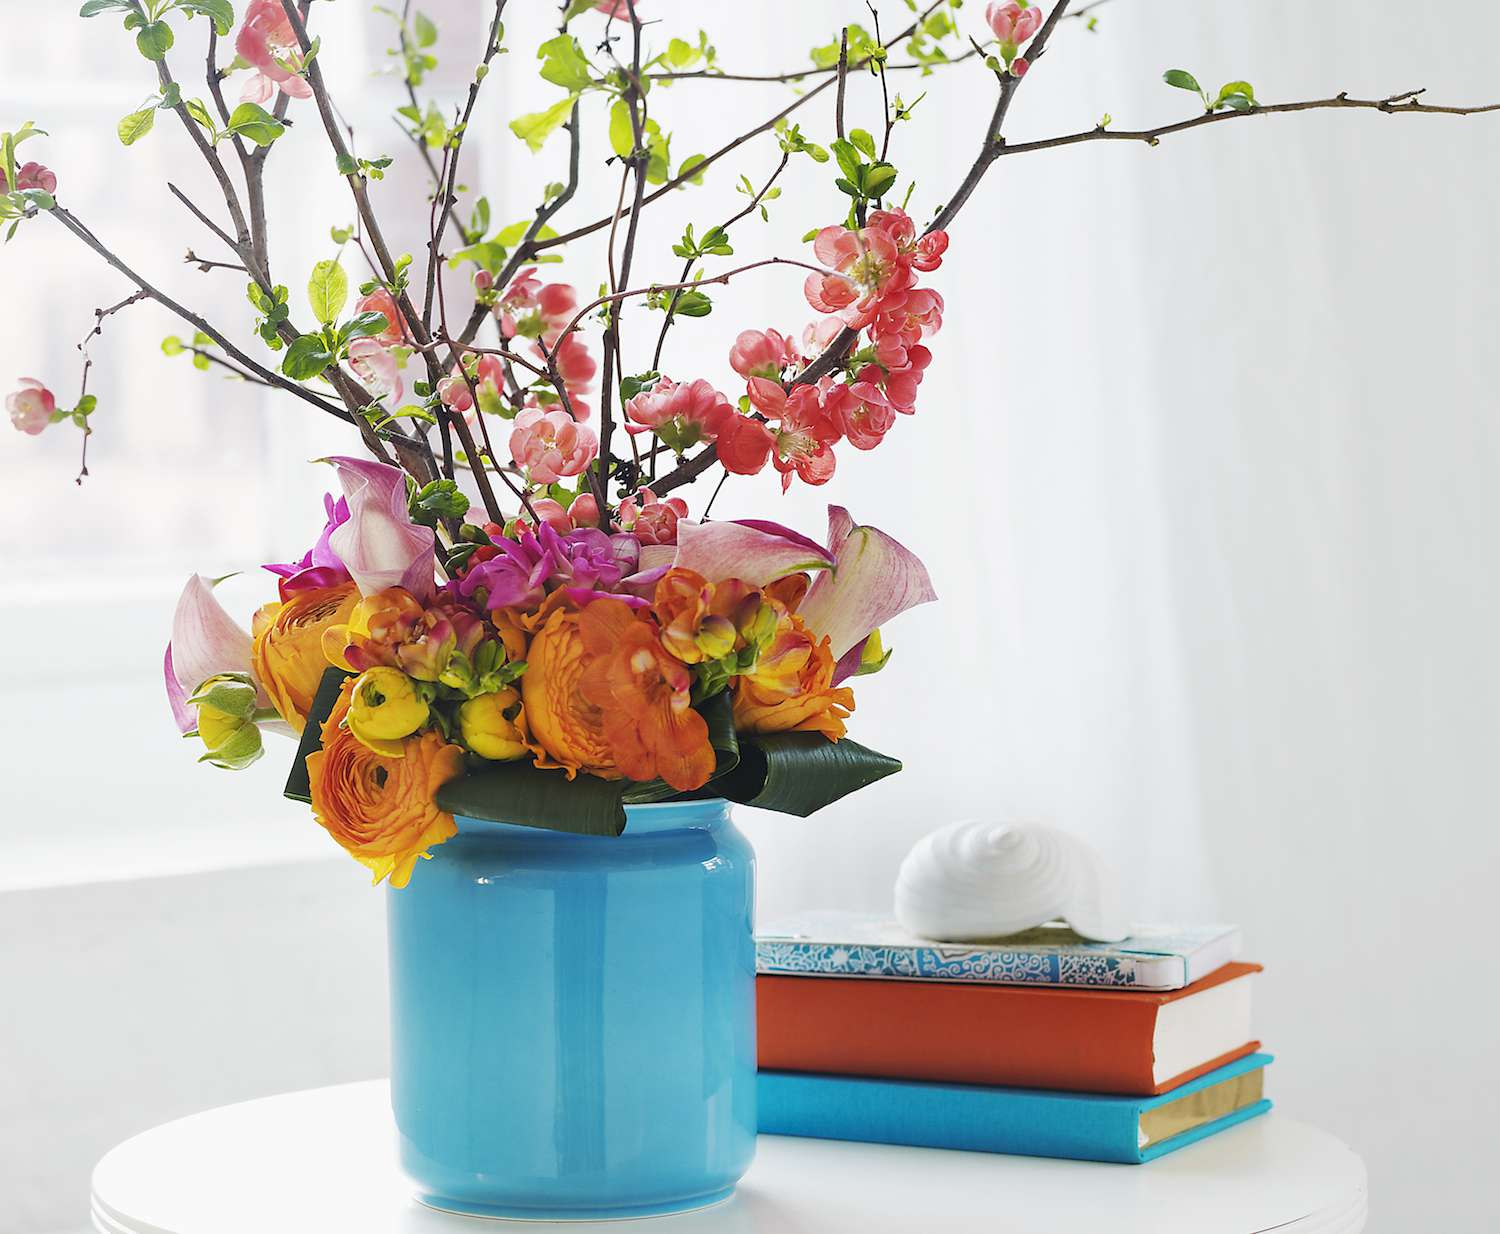 Blue vase on a table with colorful flowers next to three books.